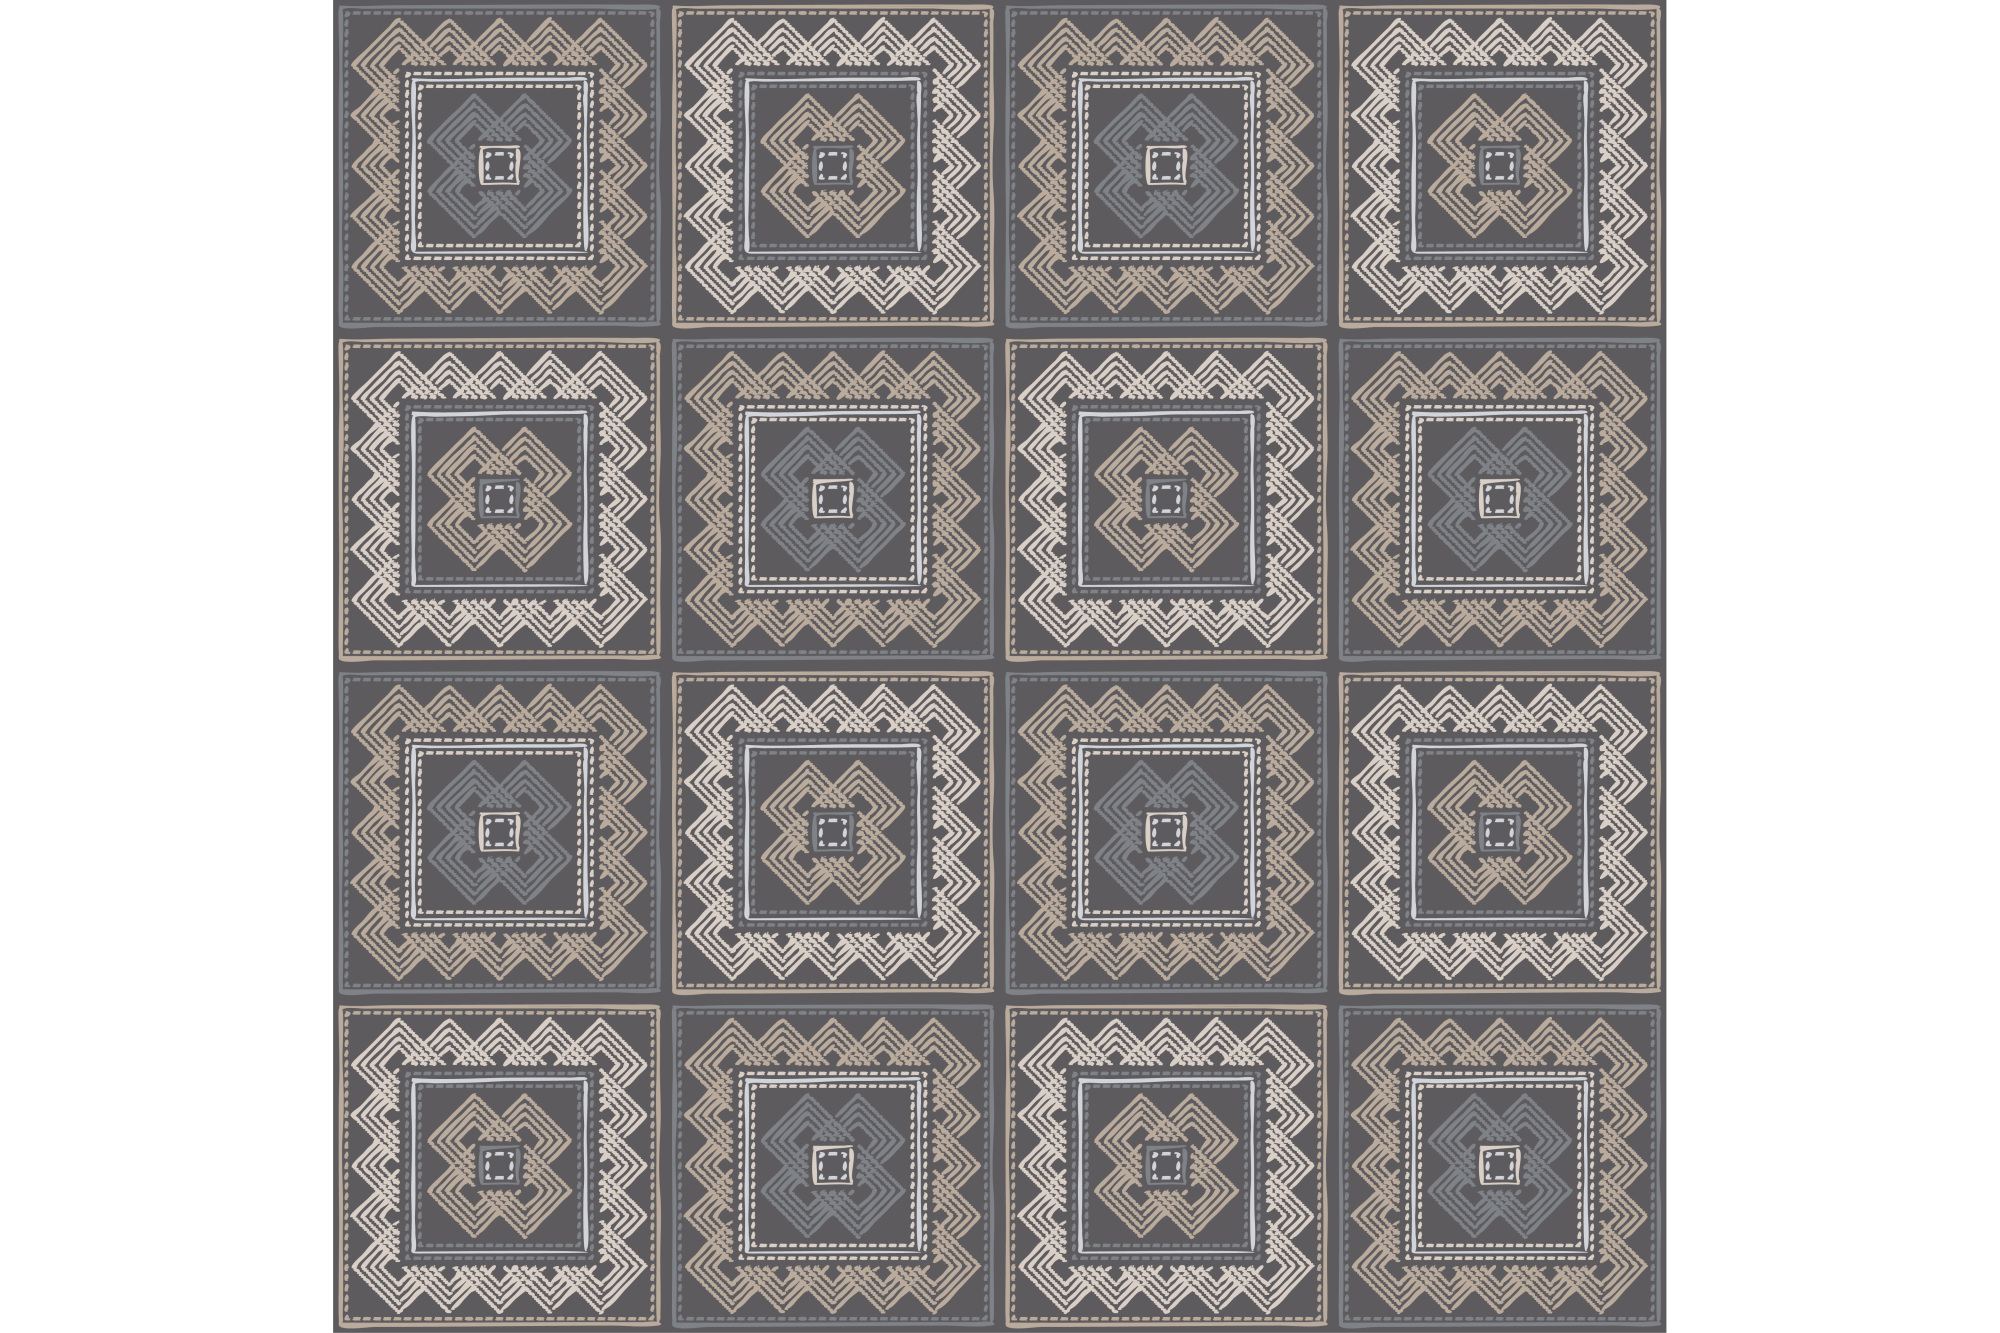 Ethnic boho seamless pattern. Print. Cloth design, wallpaper. 1 of the jpeg file in resolution 4167*4167px and 1 file eps8 1000*1000px. example image 1